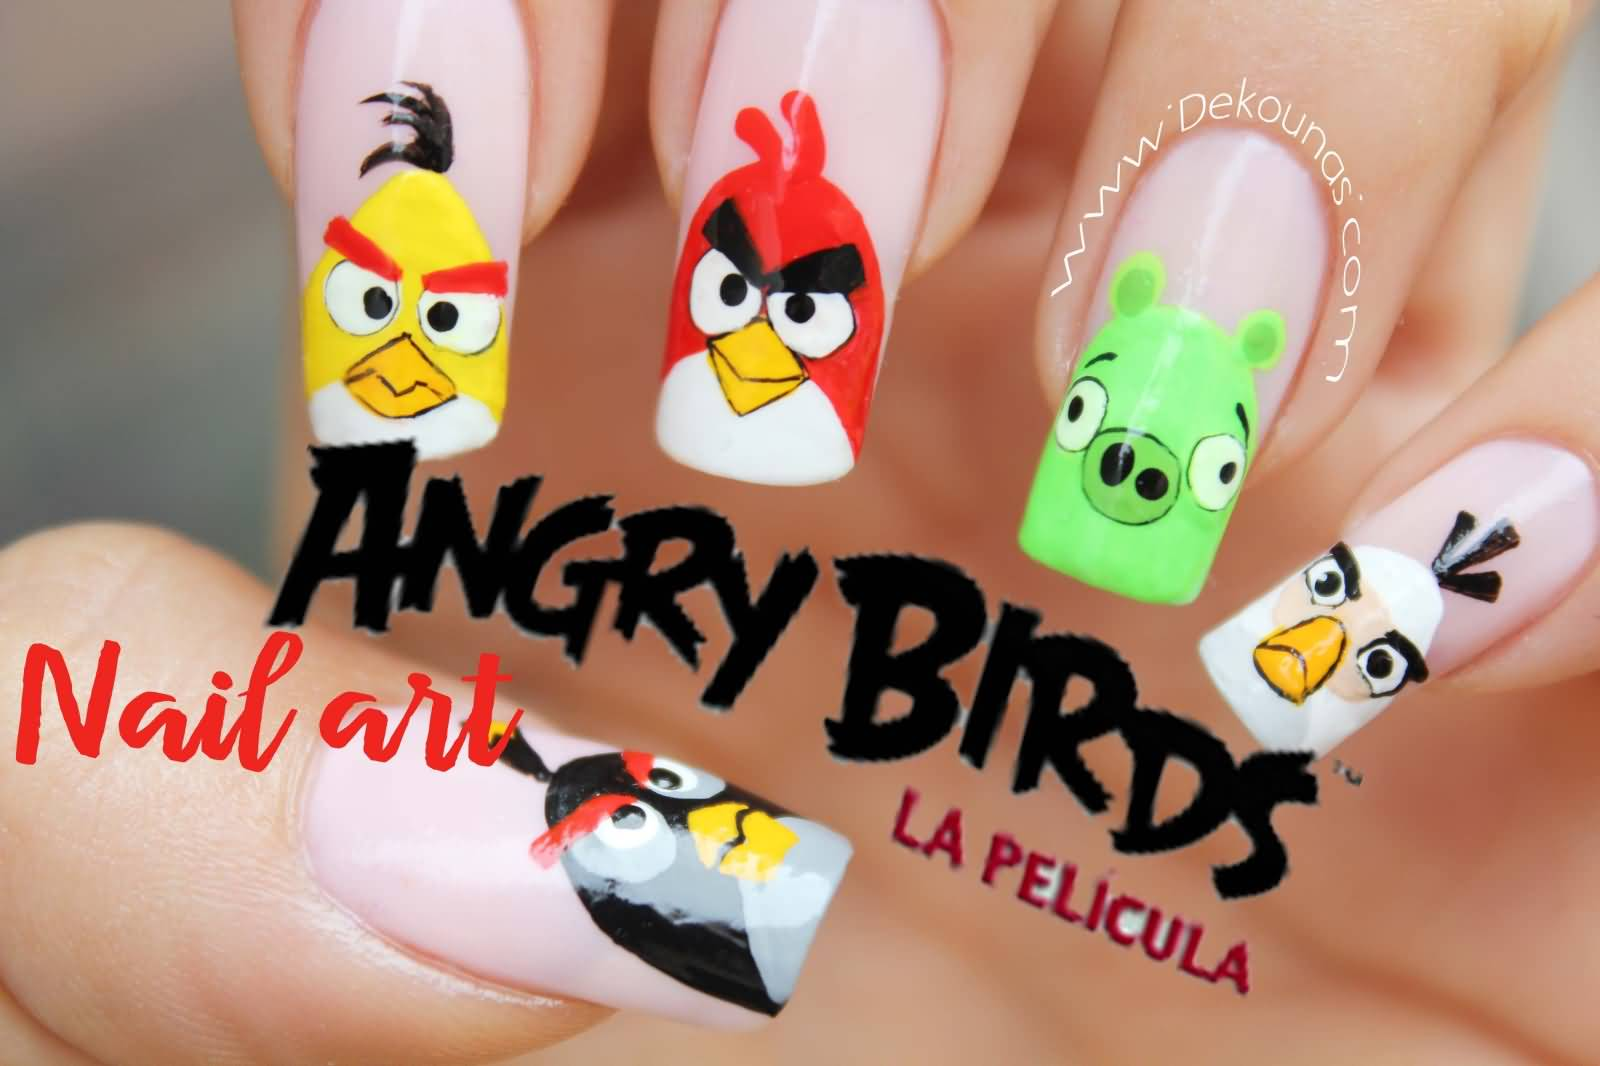 Tremendous Different Color Nail Art Design Angry Bird Nail Art Design